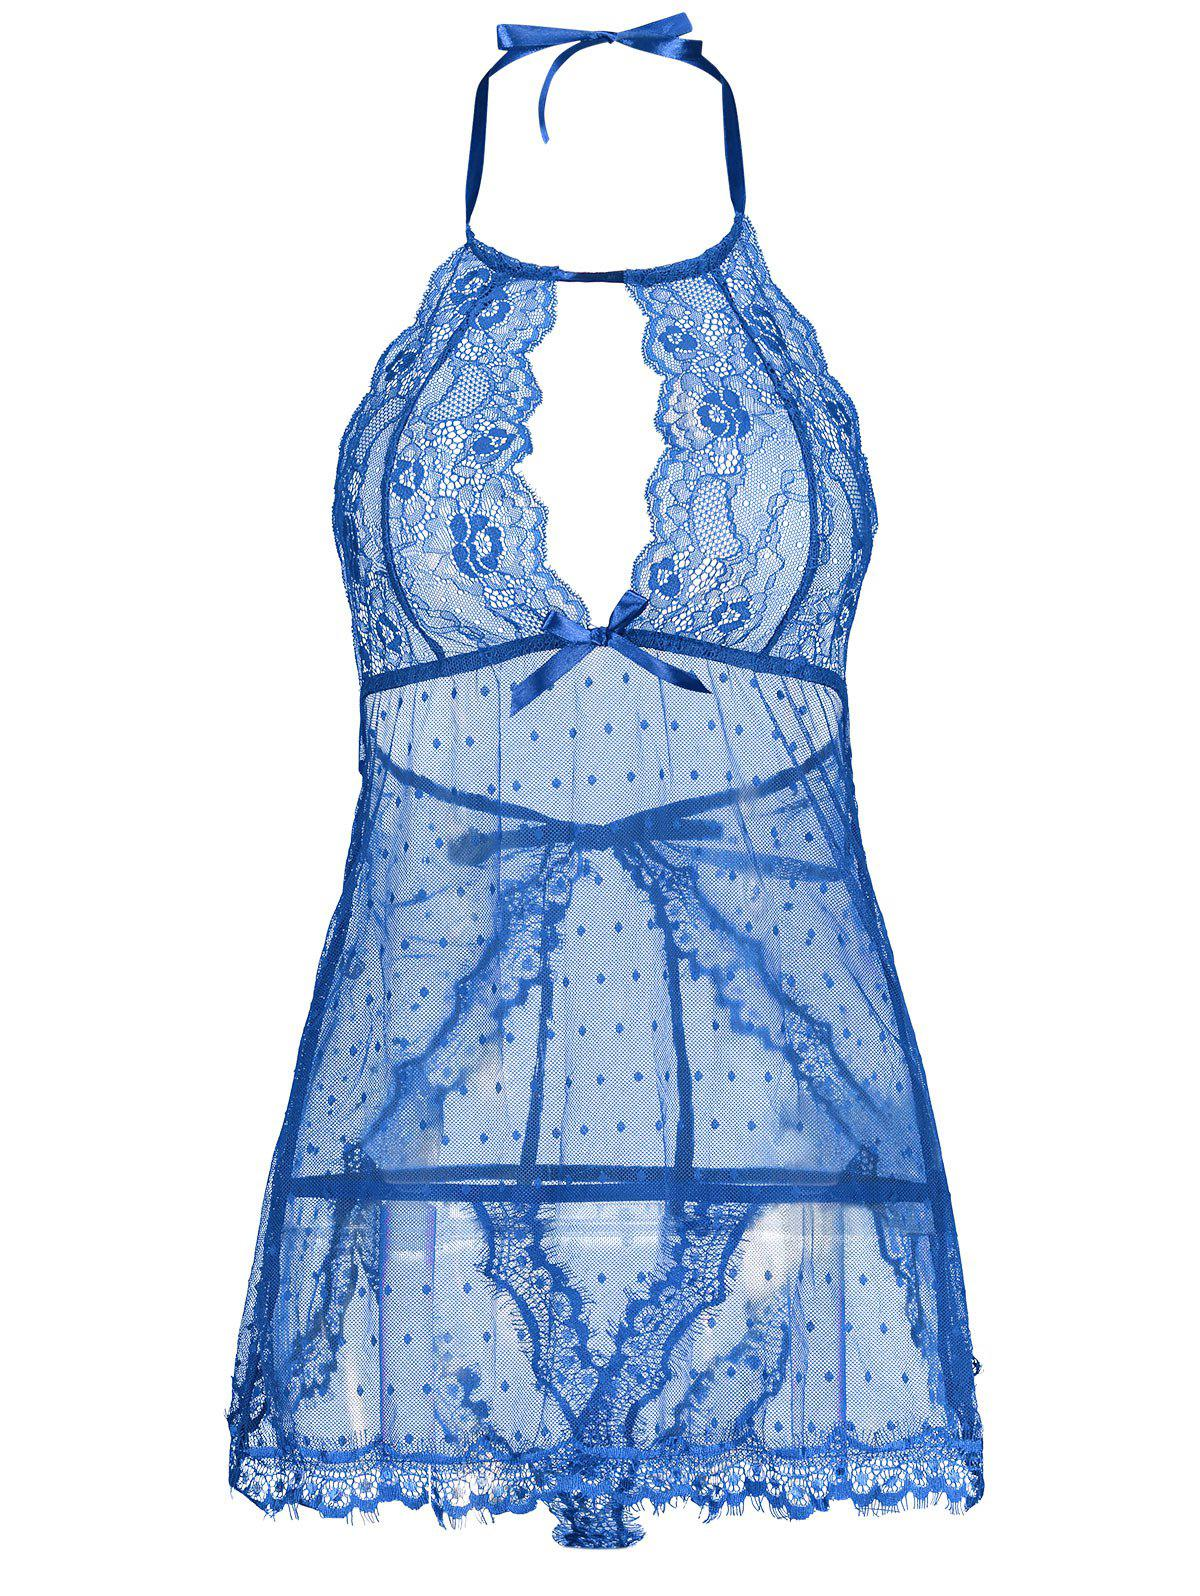 Lingerie Lace Back Split Sheer Dress - BLUE 2XL